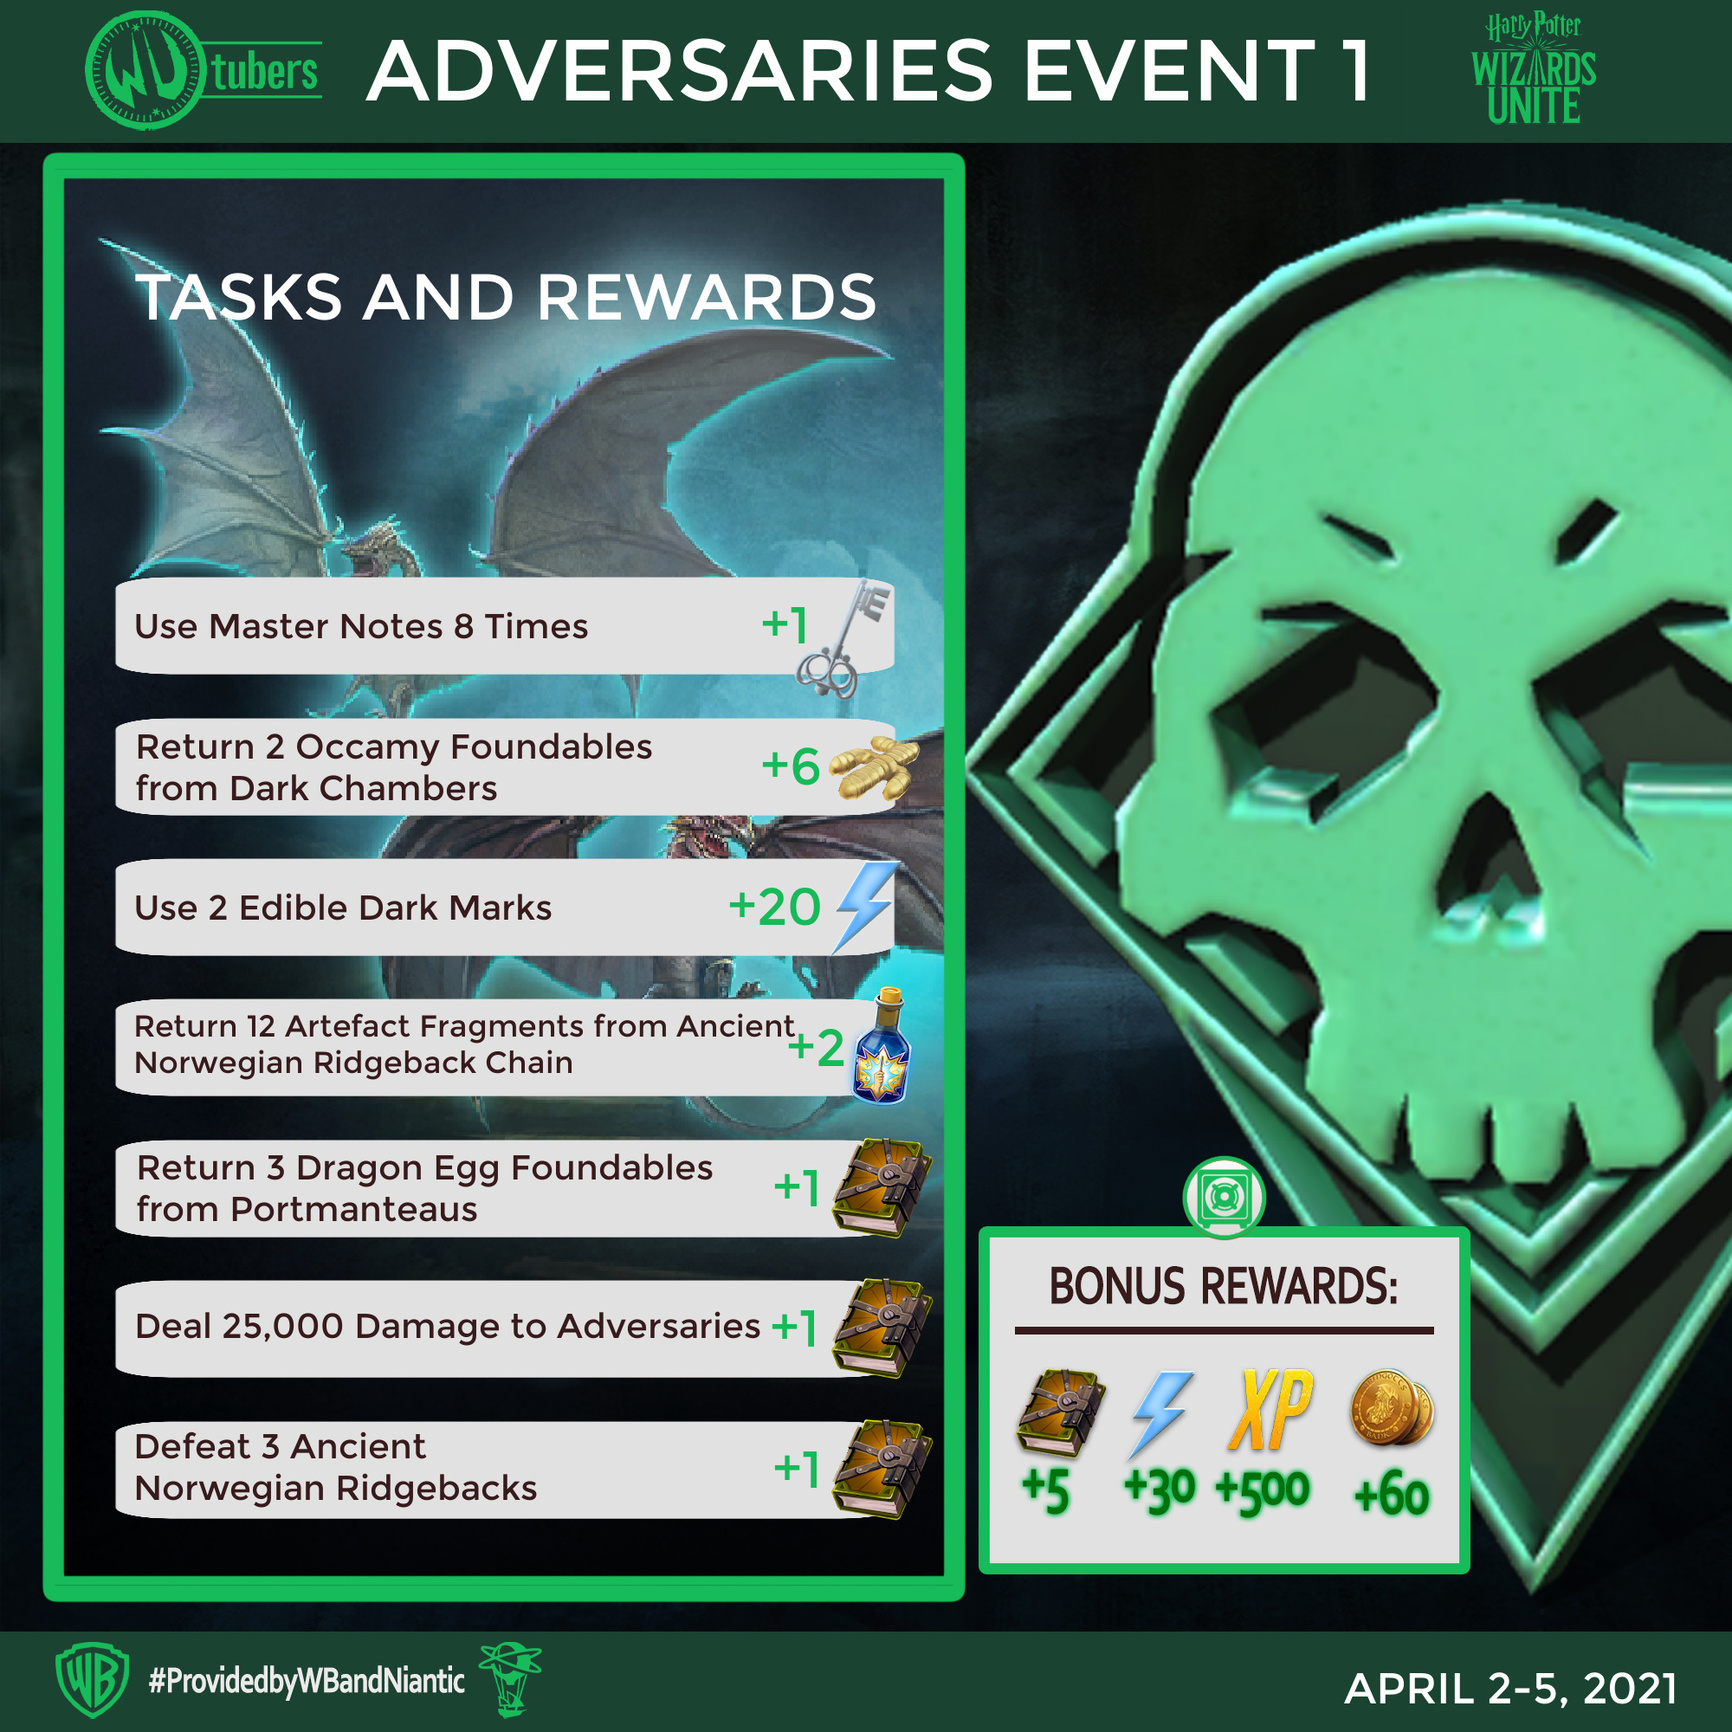 april-adversaries1-tasks.jpg